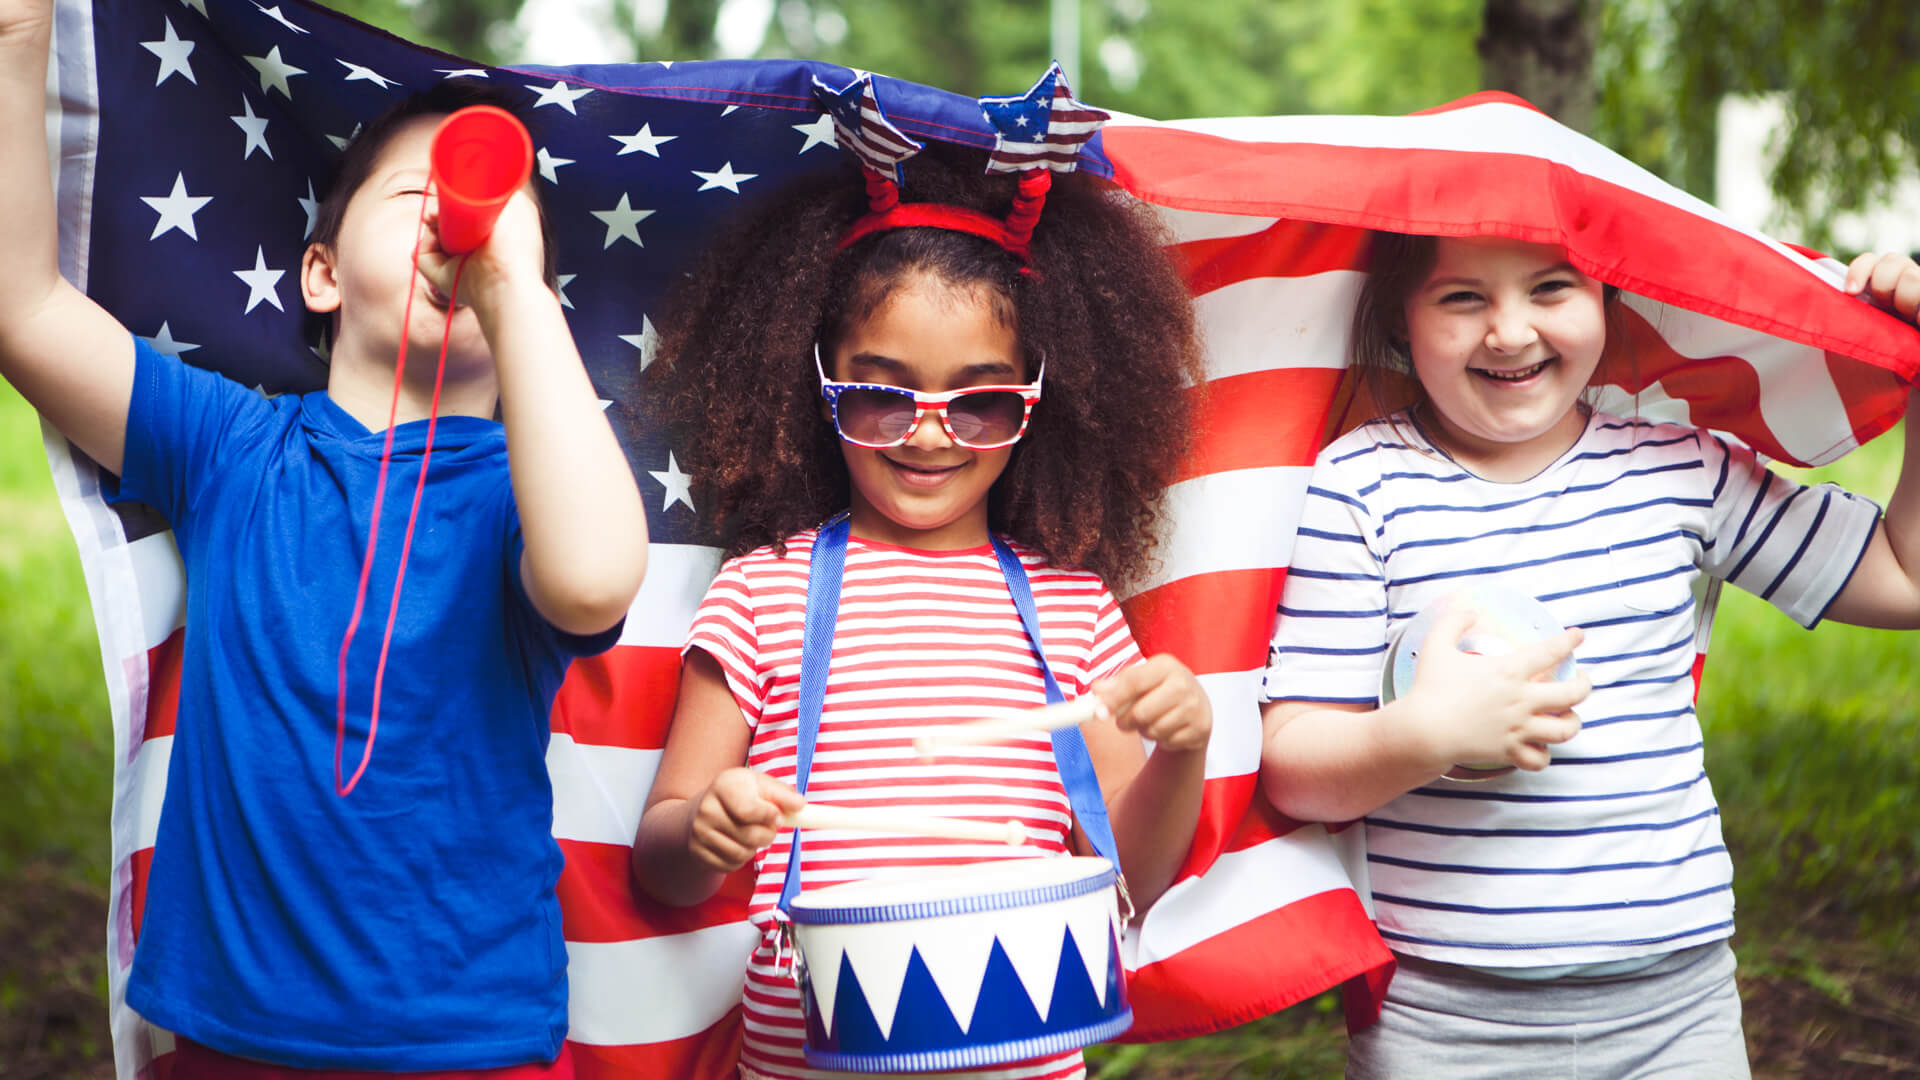 50 Memorial Day 2019 Sales, Deals and Freebies | GOBankingRates